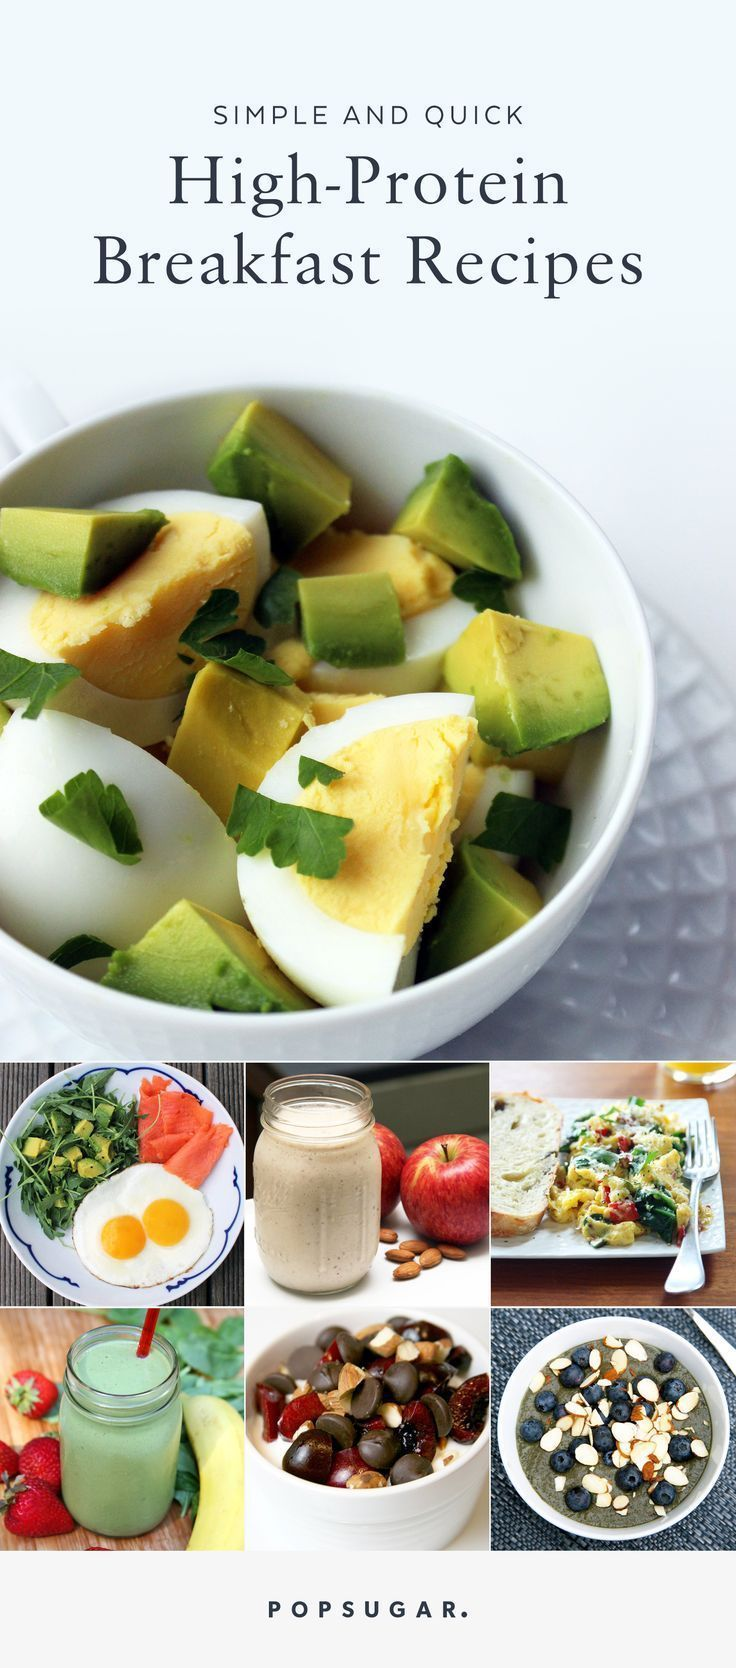 If you are looking to lose weight or get more protein in your diet a healthy breakfast is a must. These quick breakfast recipes take under 10 minutes to prep and contain at least 15 grams of protein.